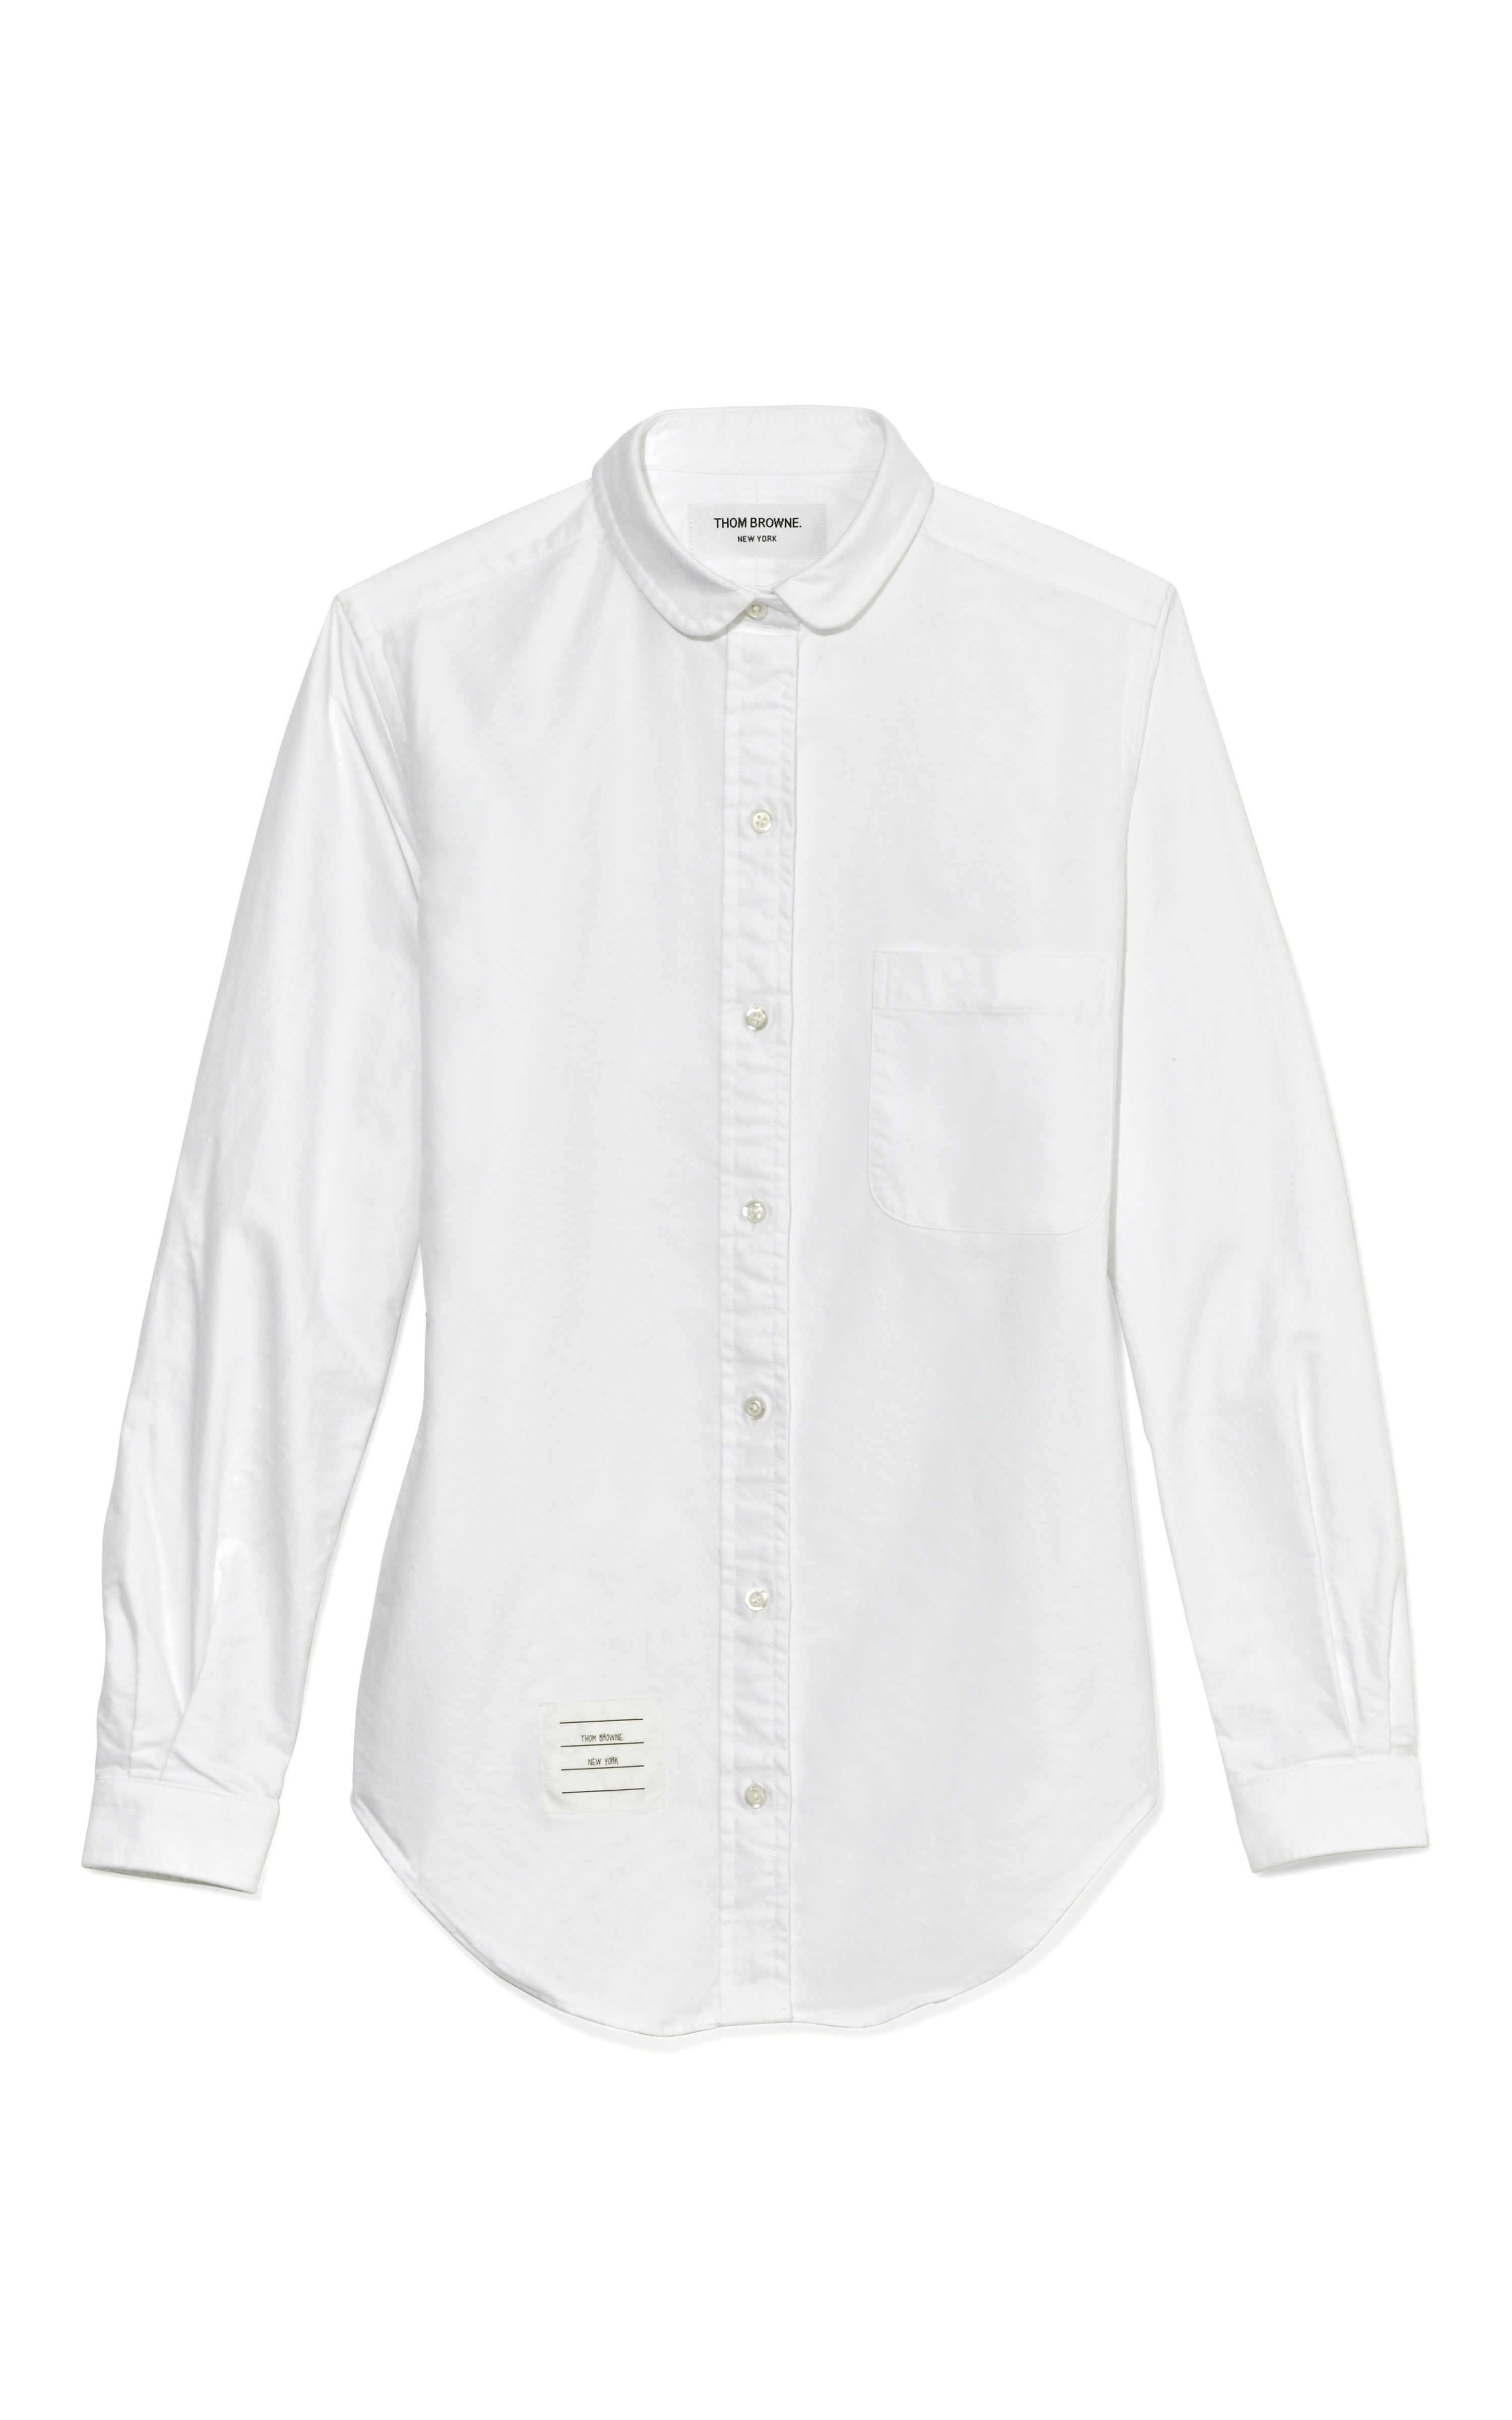 Thom Browne White Oxford Shirt With Half Round Collar In